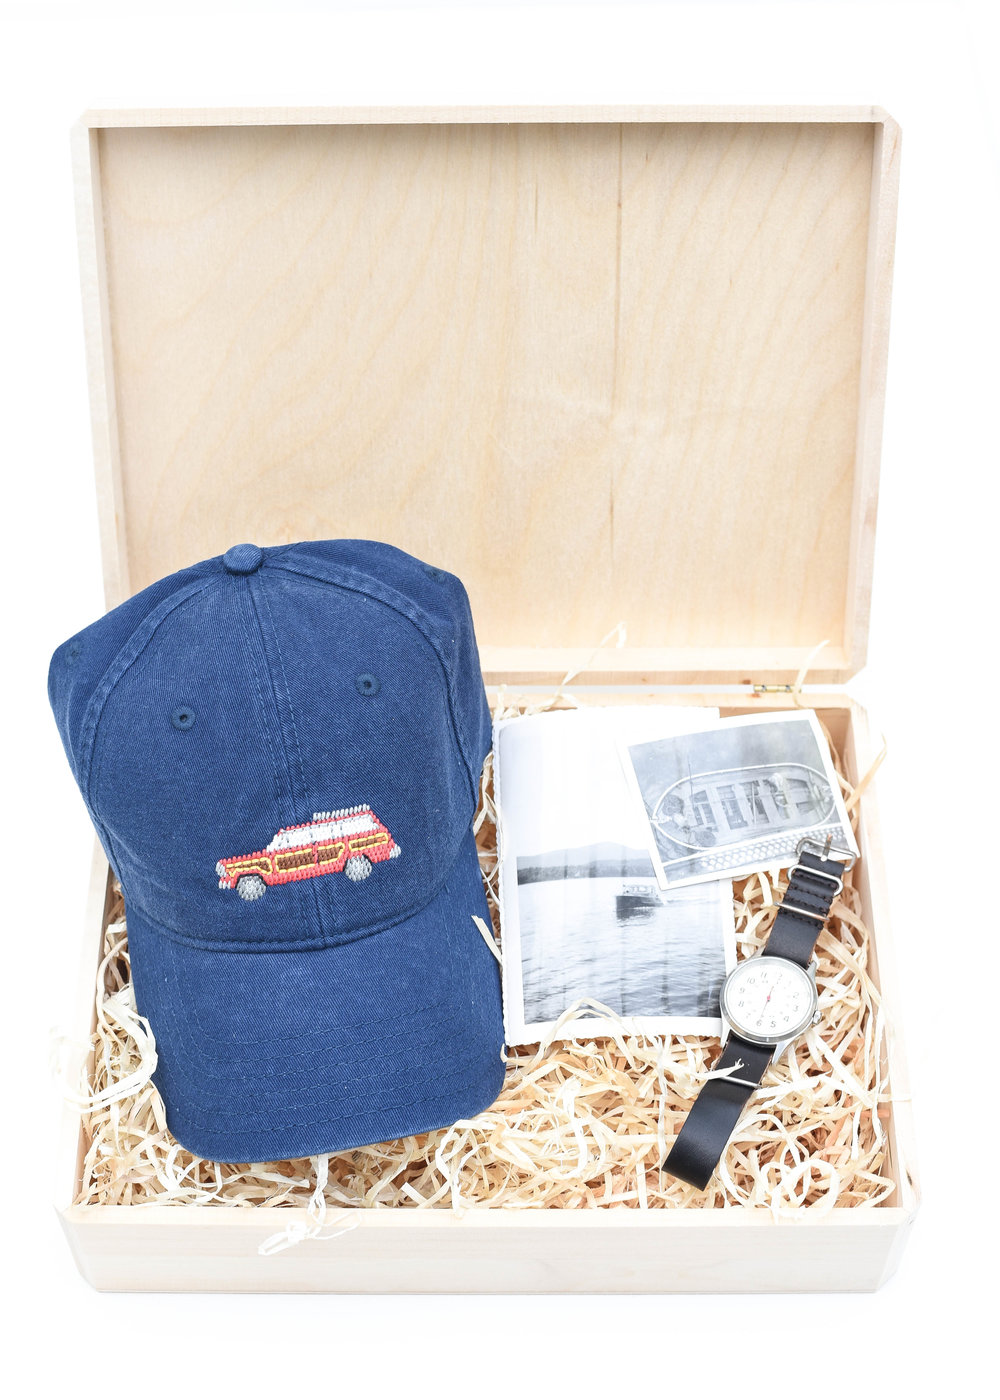 Holiday Gifts for Him, Gift Set for Men, Gifts for Dad, Iron and Twine Gift Guide